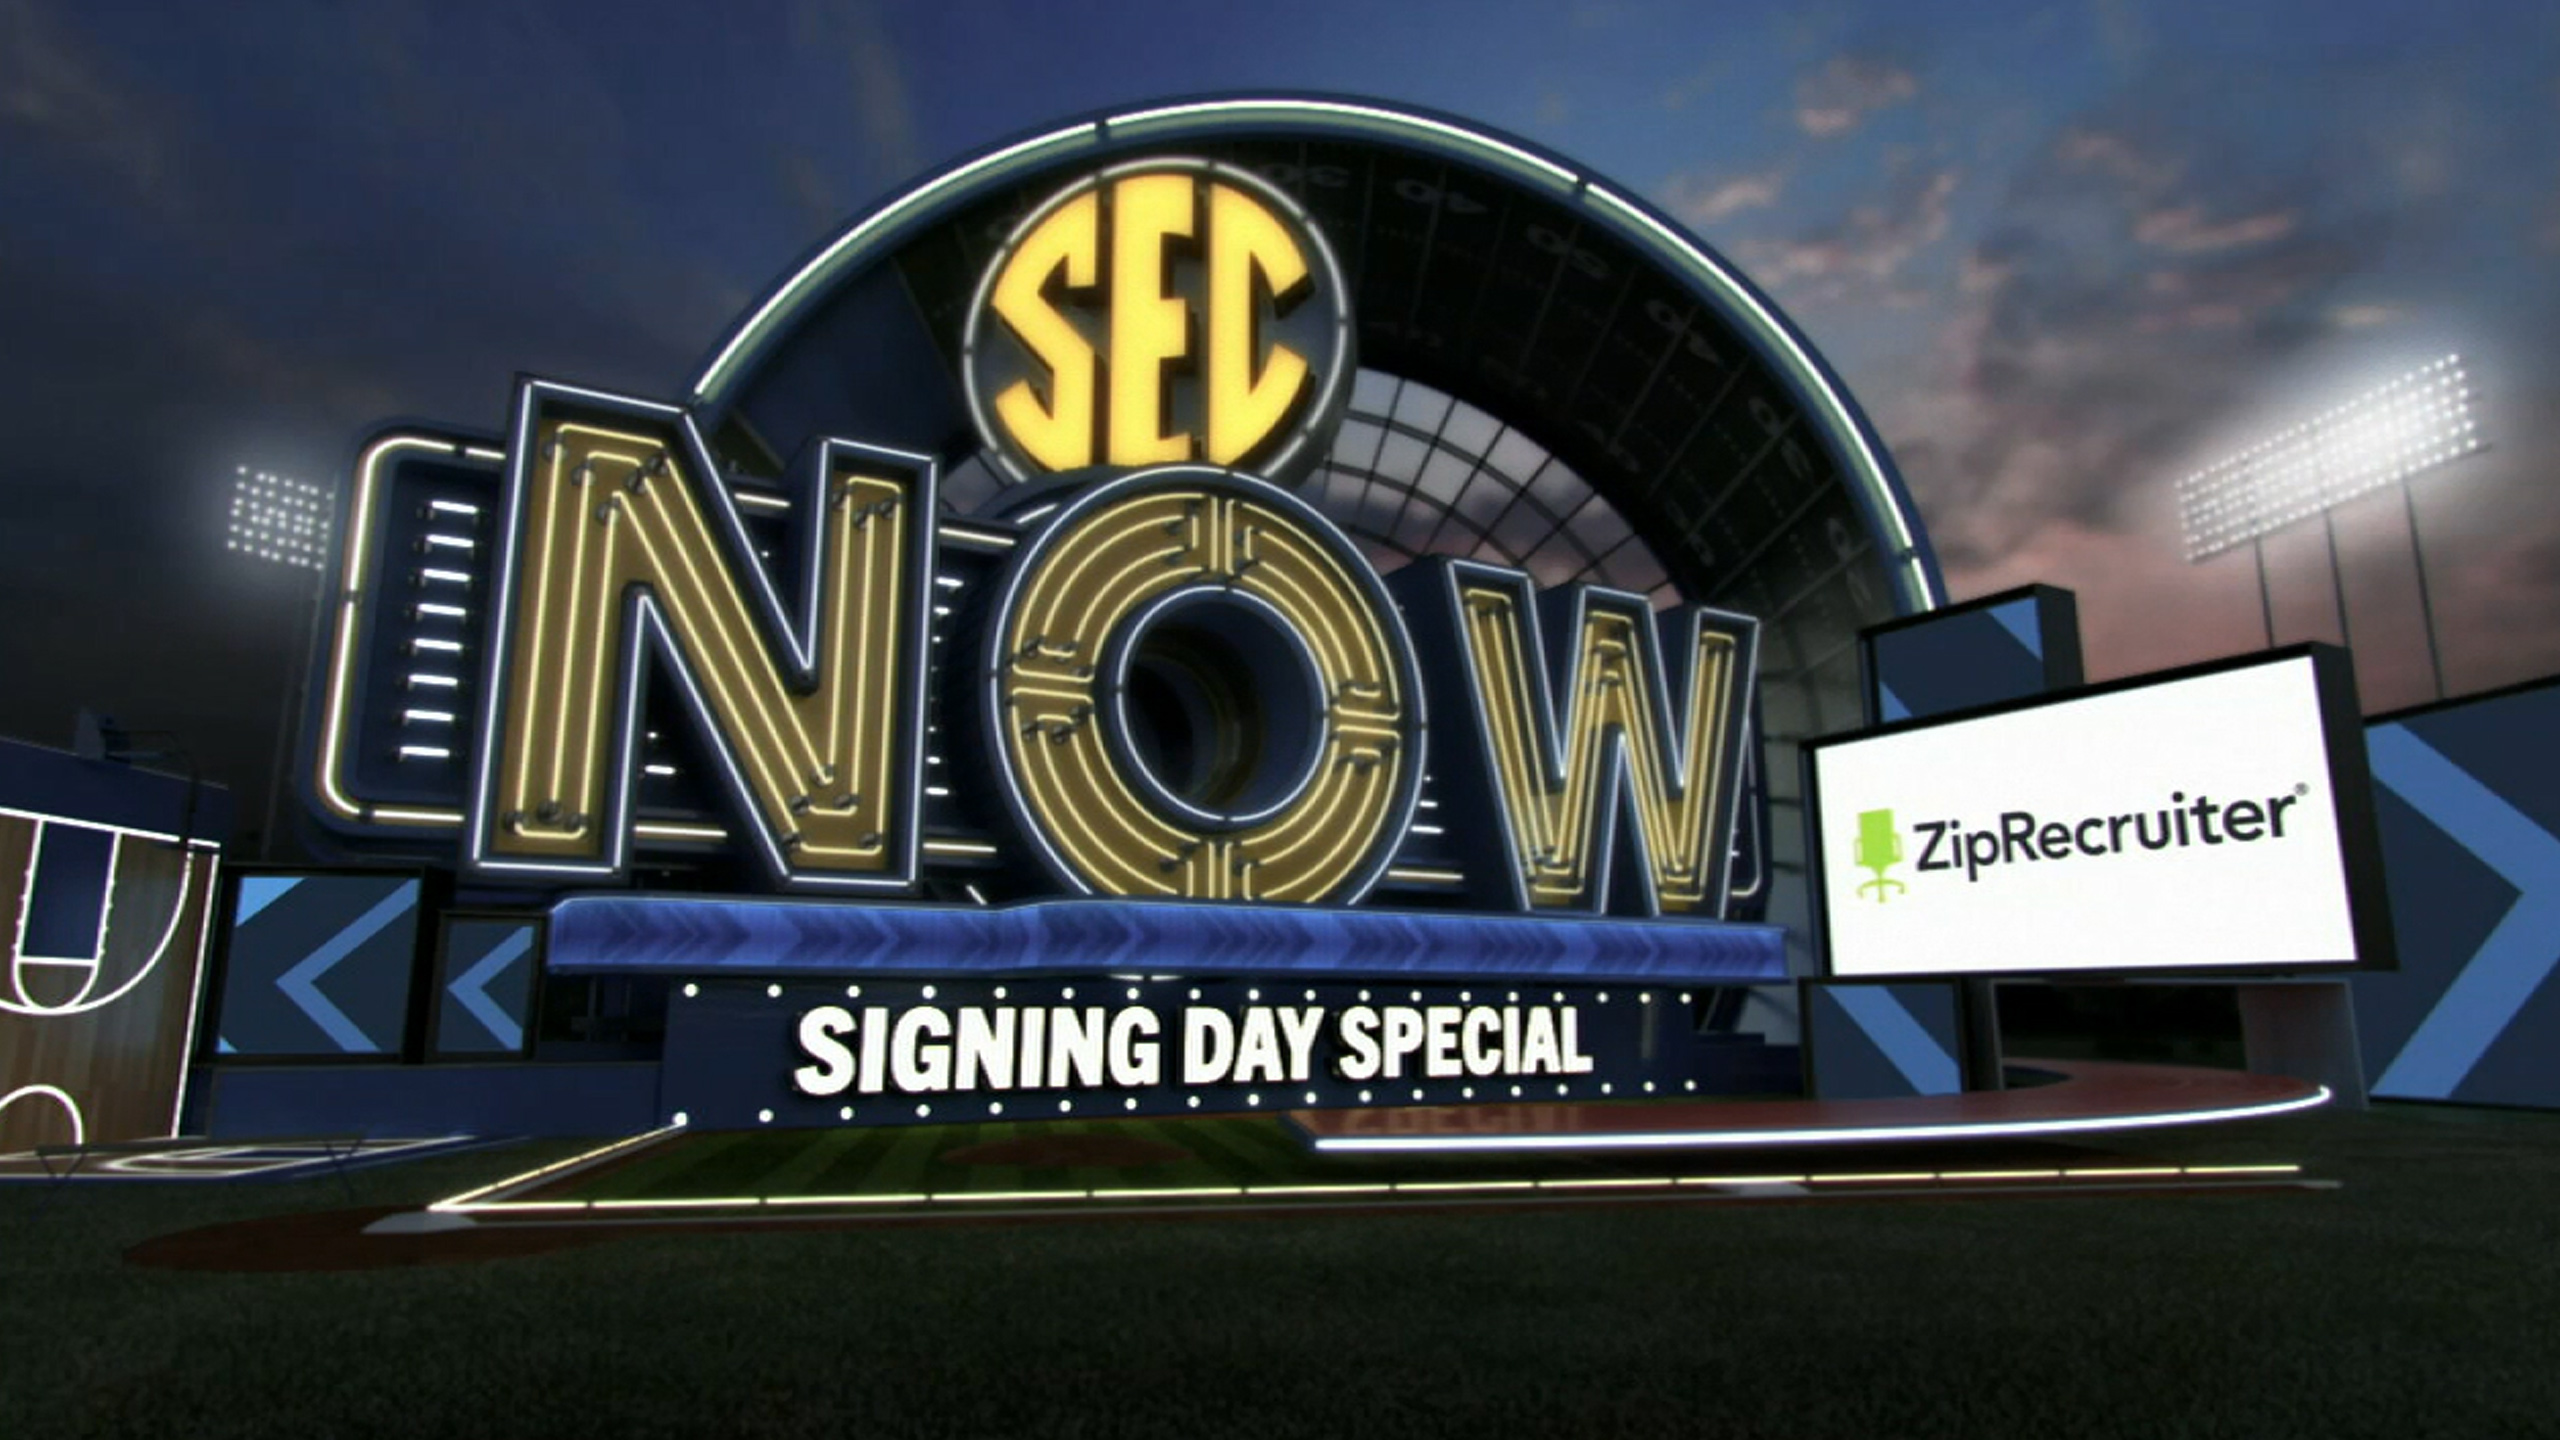 SEC Now: Signing Day Special Presented by ZipRecruiter